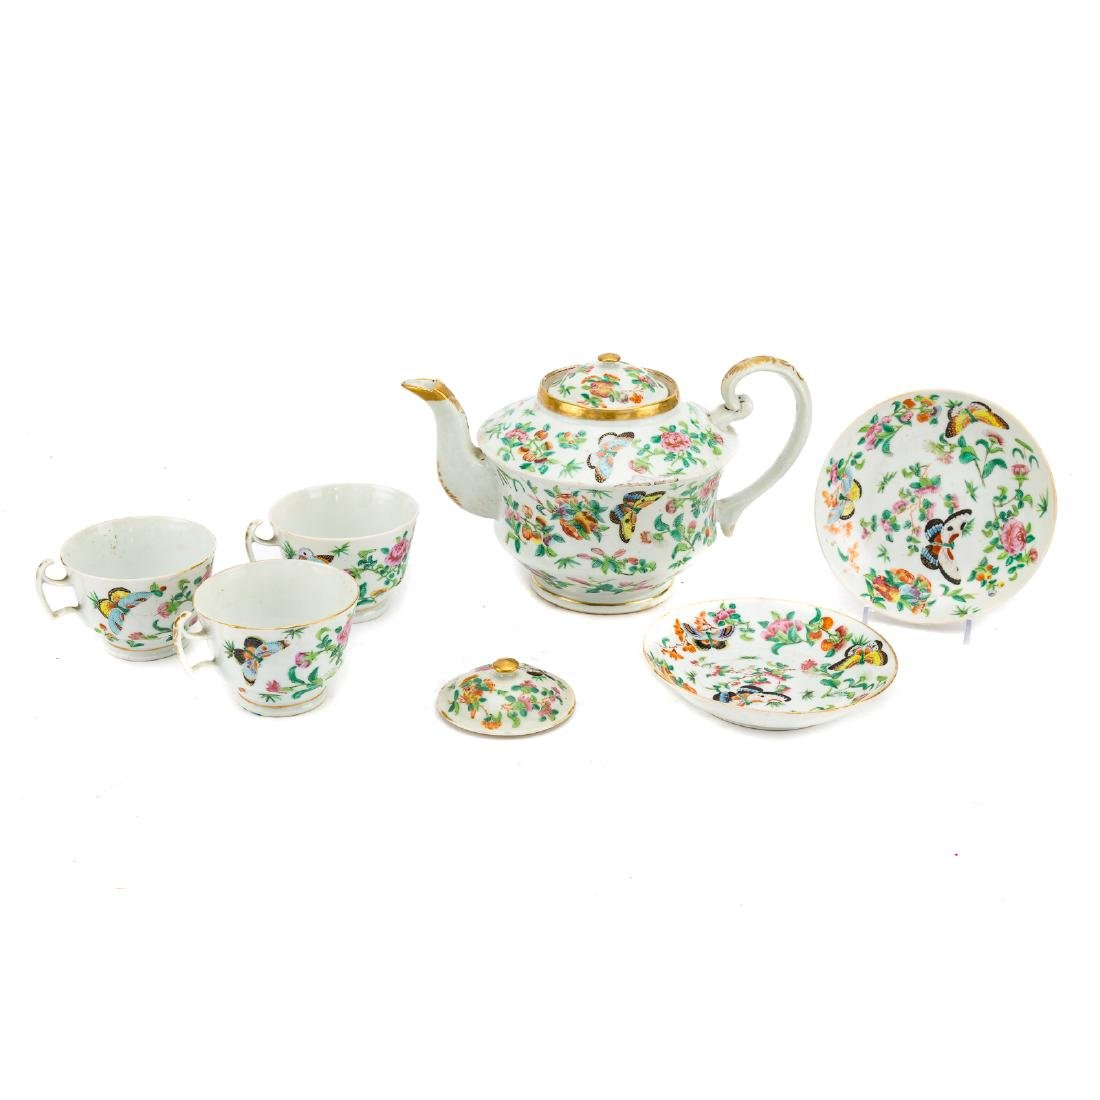 13-piece Chinese Export Famille Rose tea set